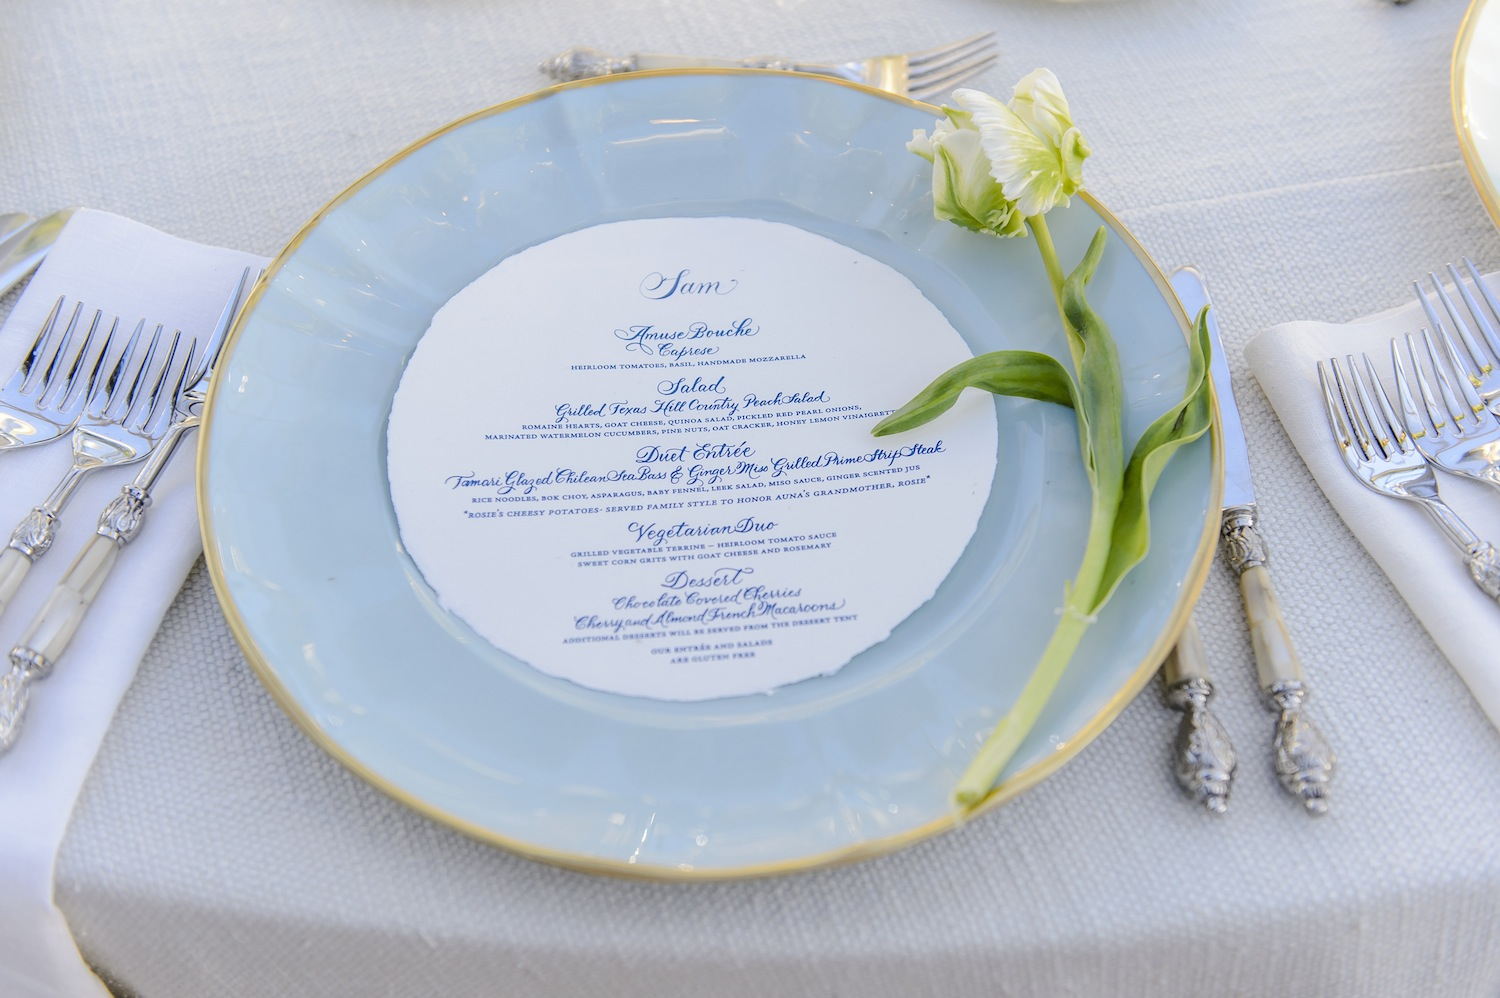 light blue fine china charger plate with gold trim for wedding reception place setting & 11 Chargers that Transformed Place Settings - Inside Weddings